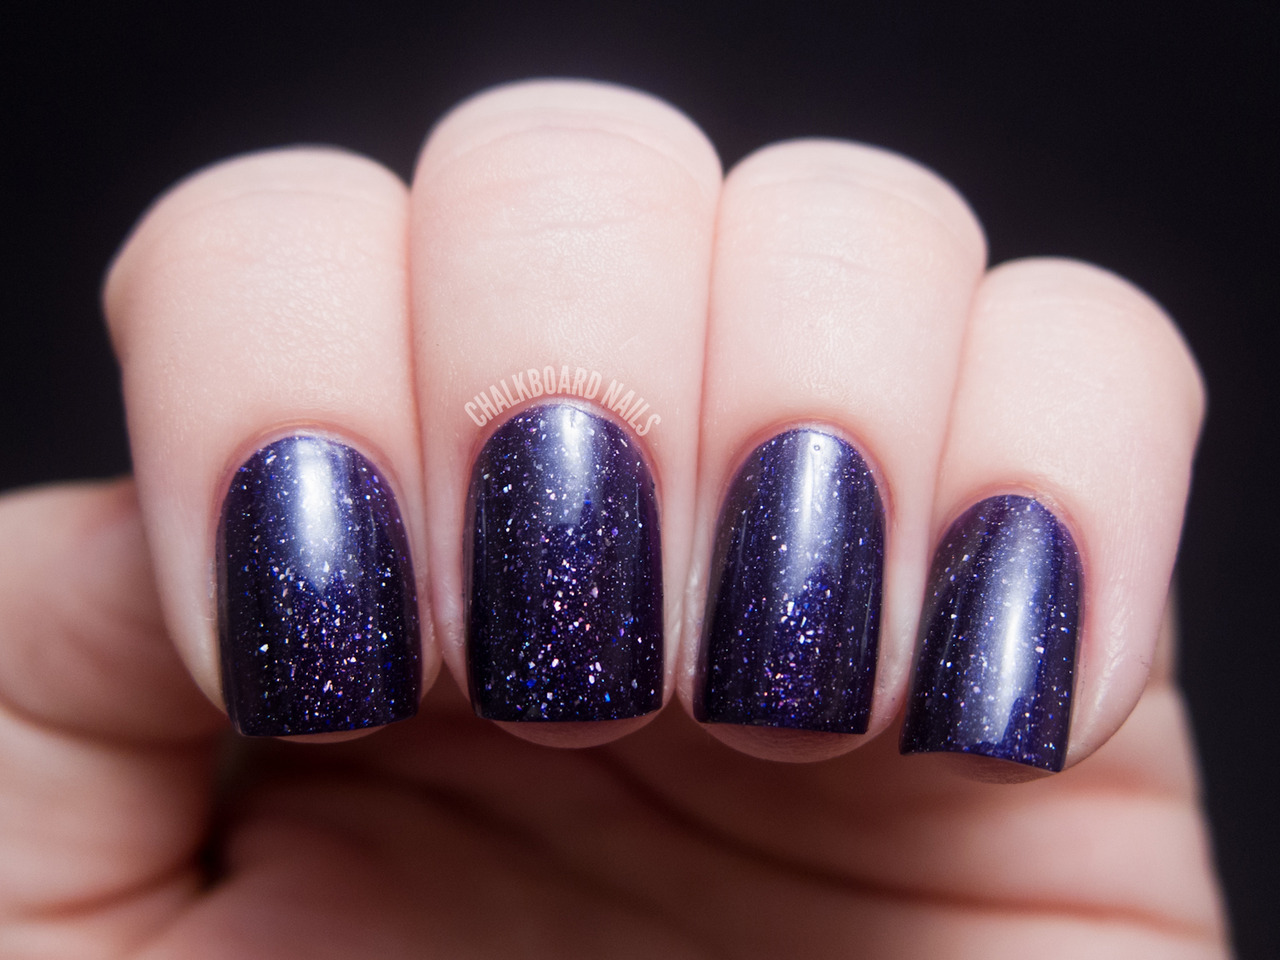 piCture pOlish Attitude by OverallBeauty.com Check out the post for more photos and a chance to win a bottle! Must be a follower to win.